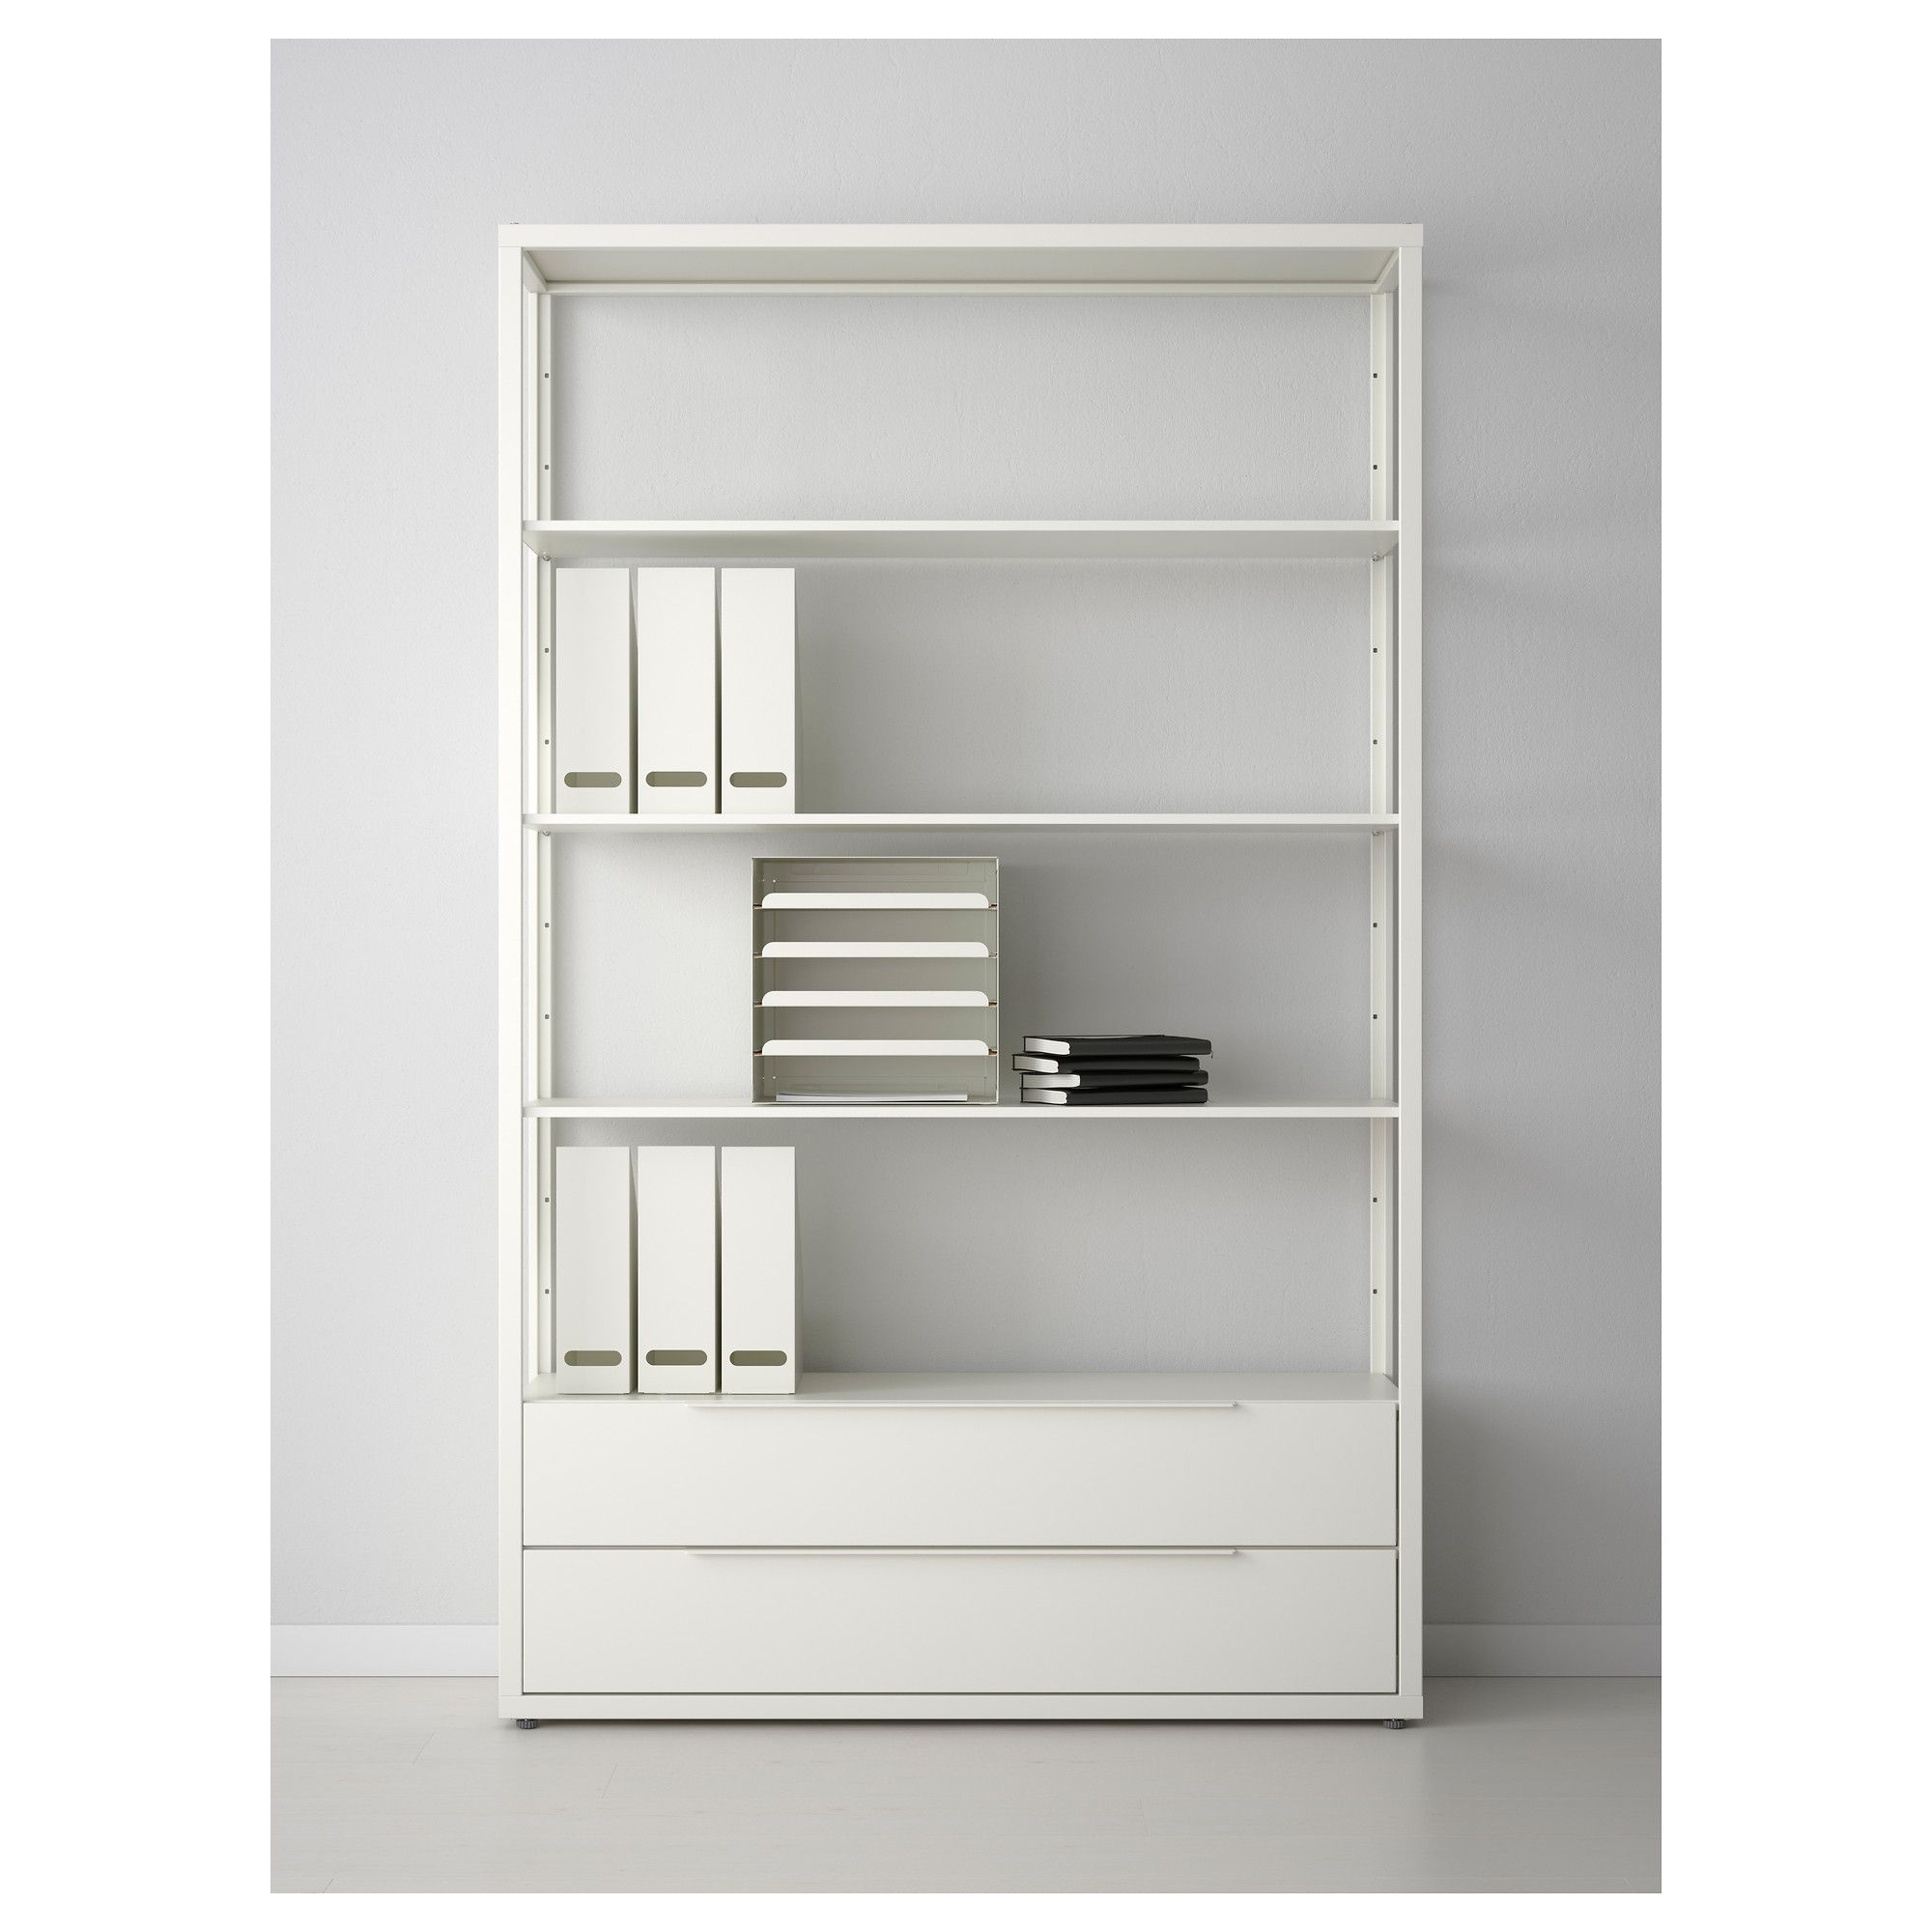 "FJ""LKINGE Shelf unit with drawers white"